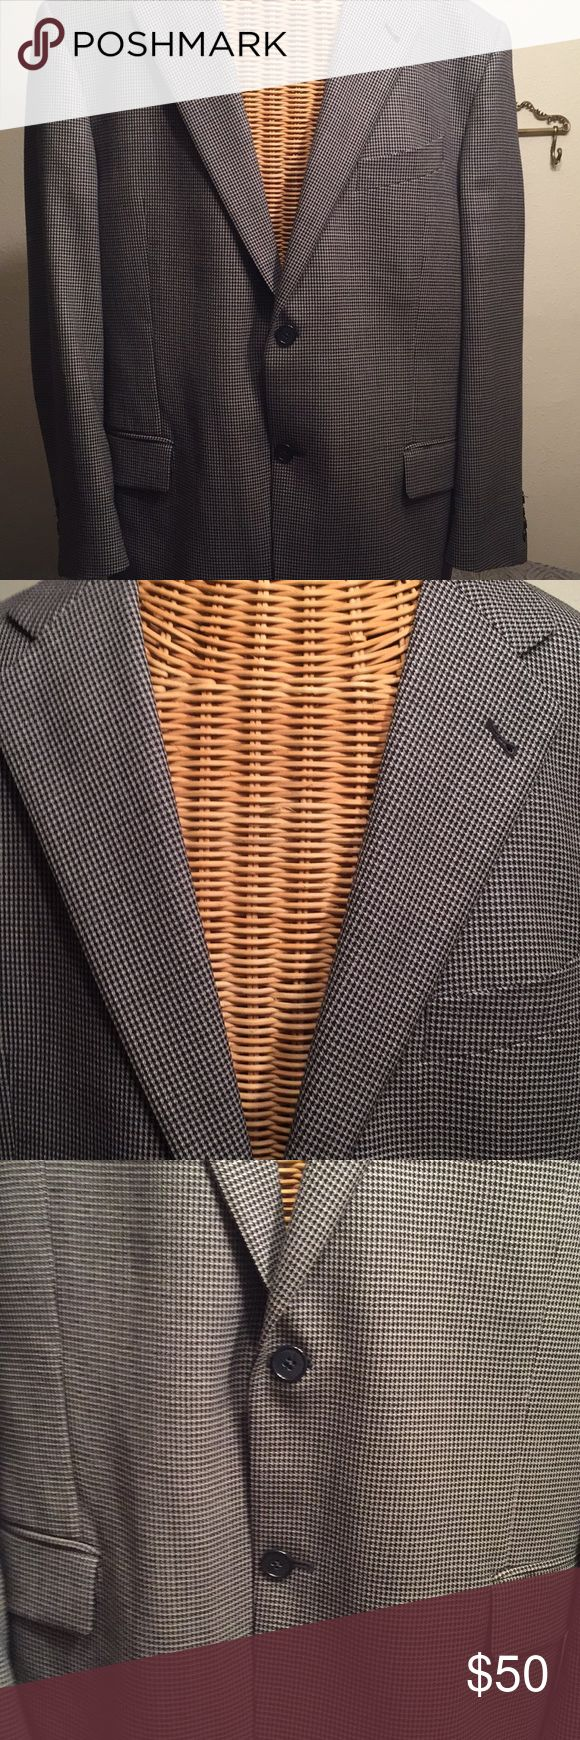 Joseph. Abboud Sports Jacket EUC, black & white houndstooth jacket in perfect condition joseph Abboud for Nordstrom Suits & Blazers Sport Coats & Blazers